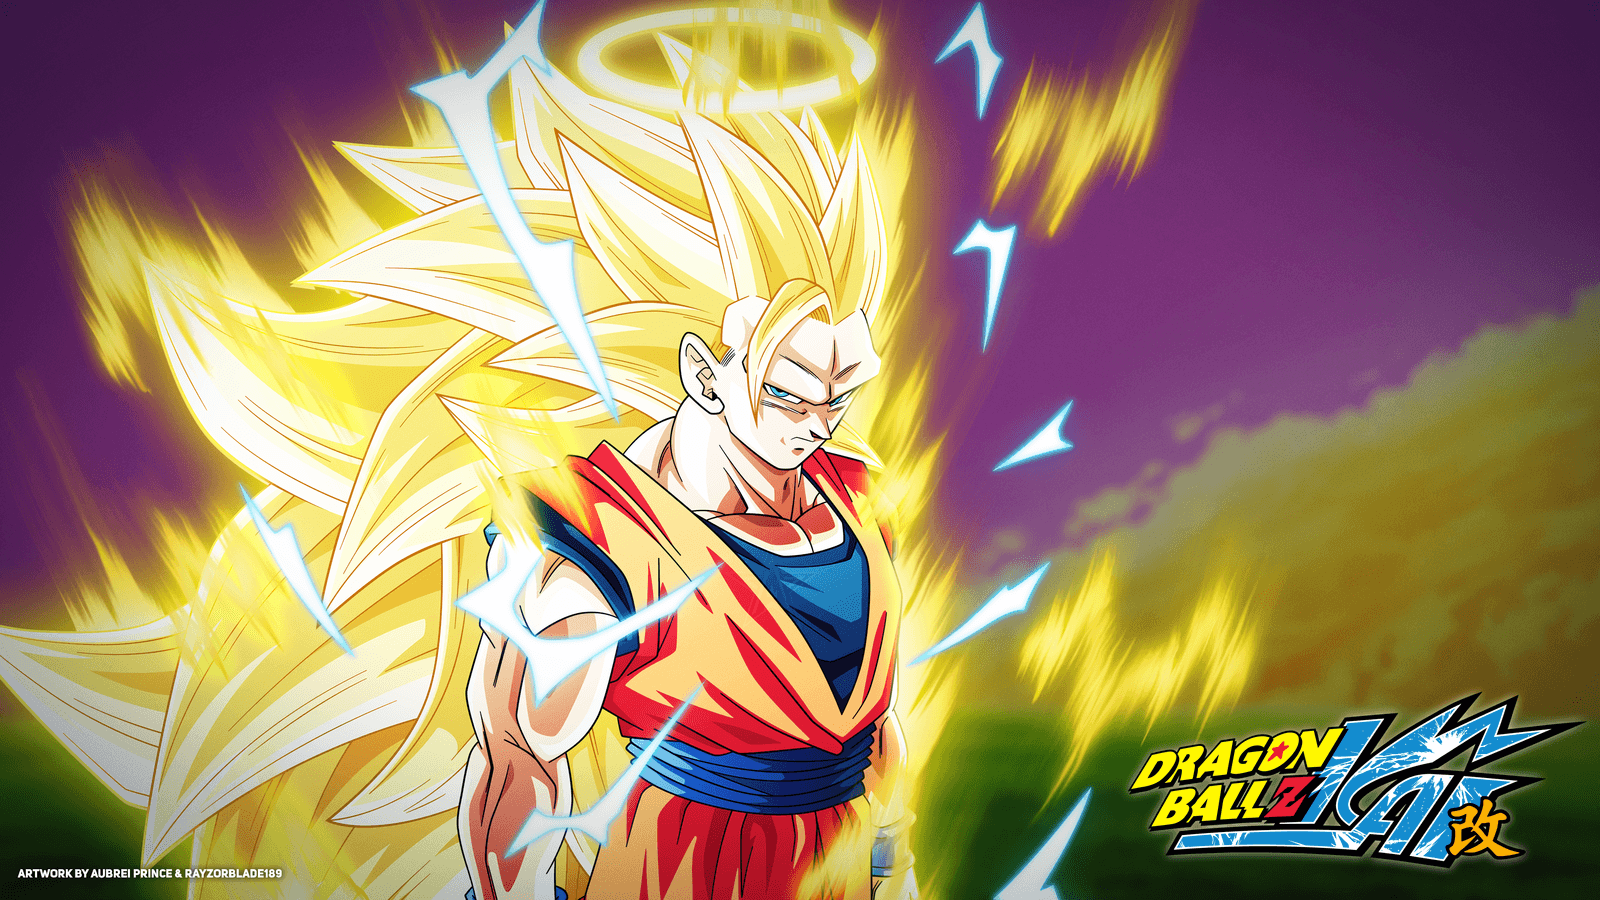 DragonBall Z Kai 4K Wallpapers by AubreiPrince